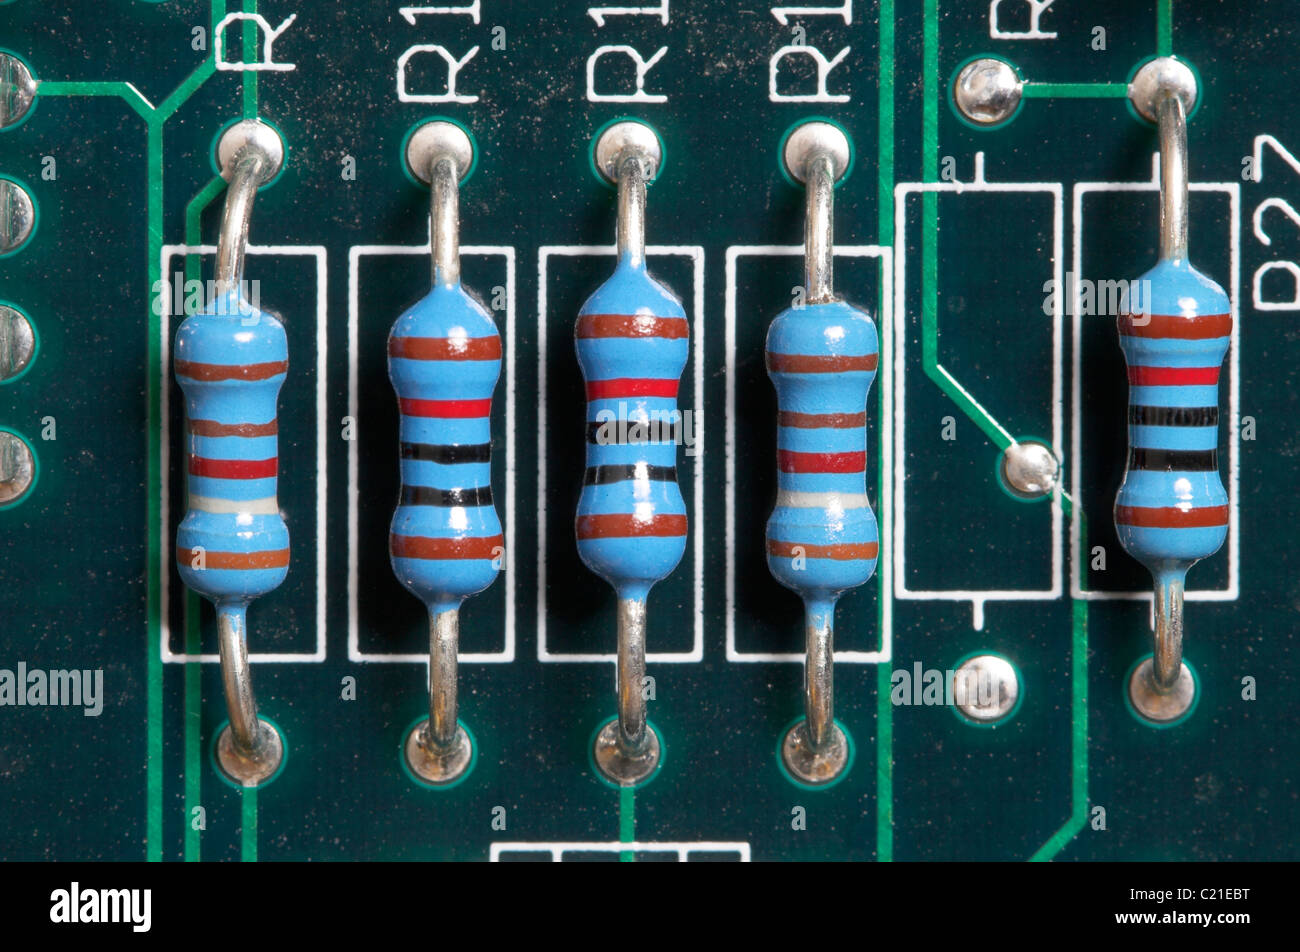 Resistors mounted on a printed circuit board. - Stock Image